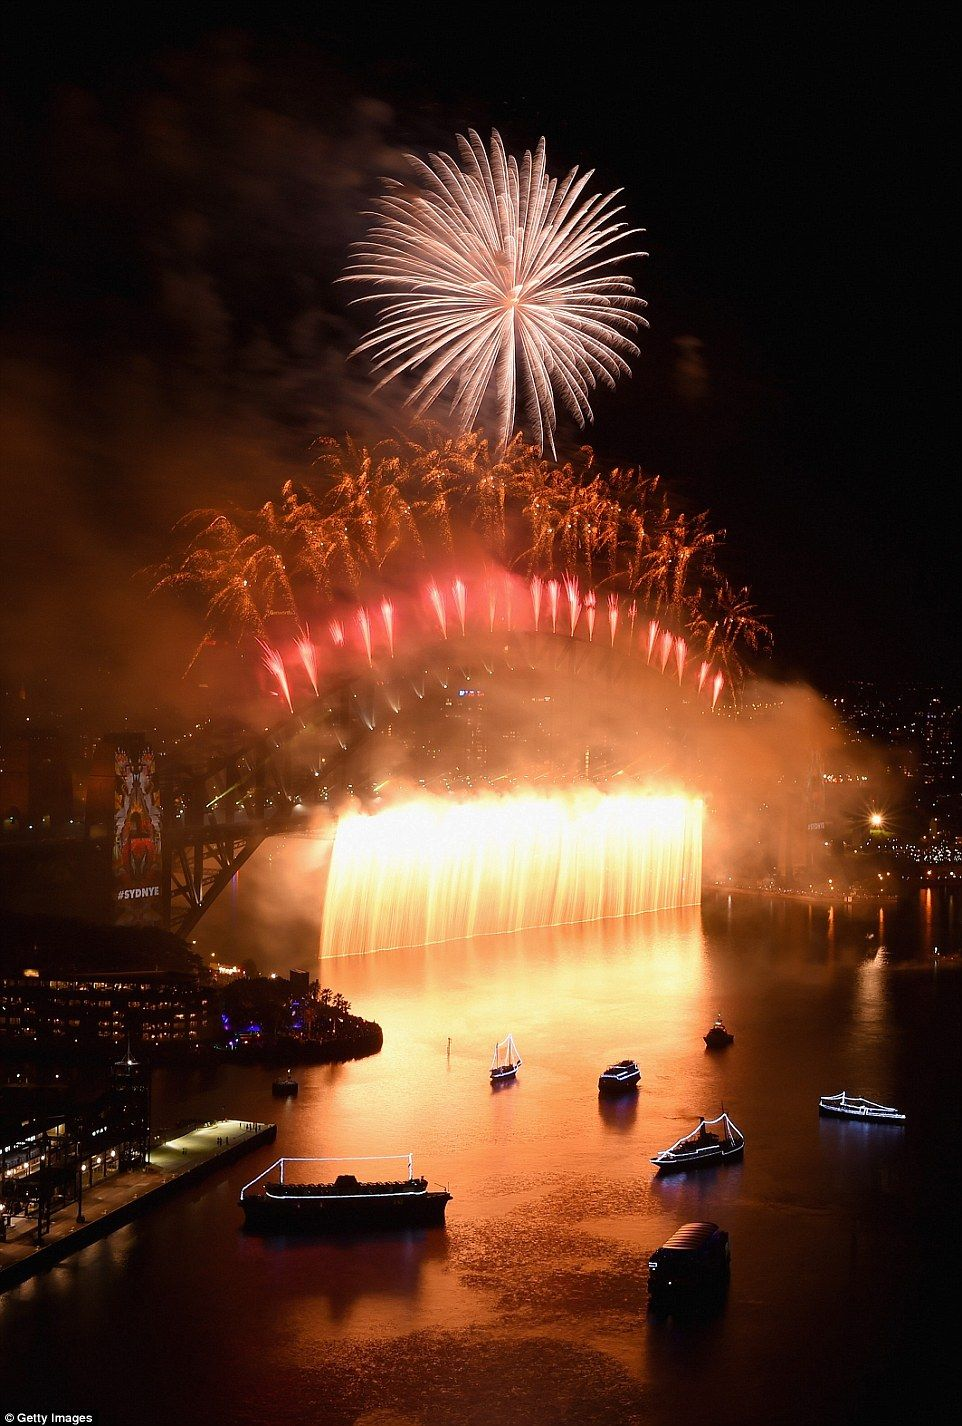 London's New Year's fireworks display rivals Sydney's